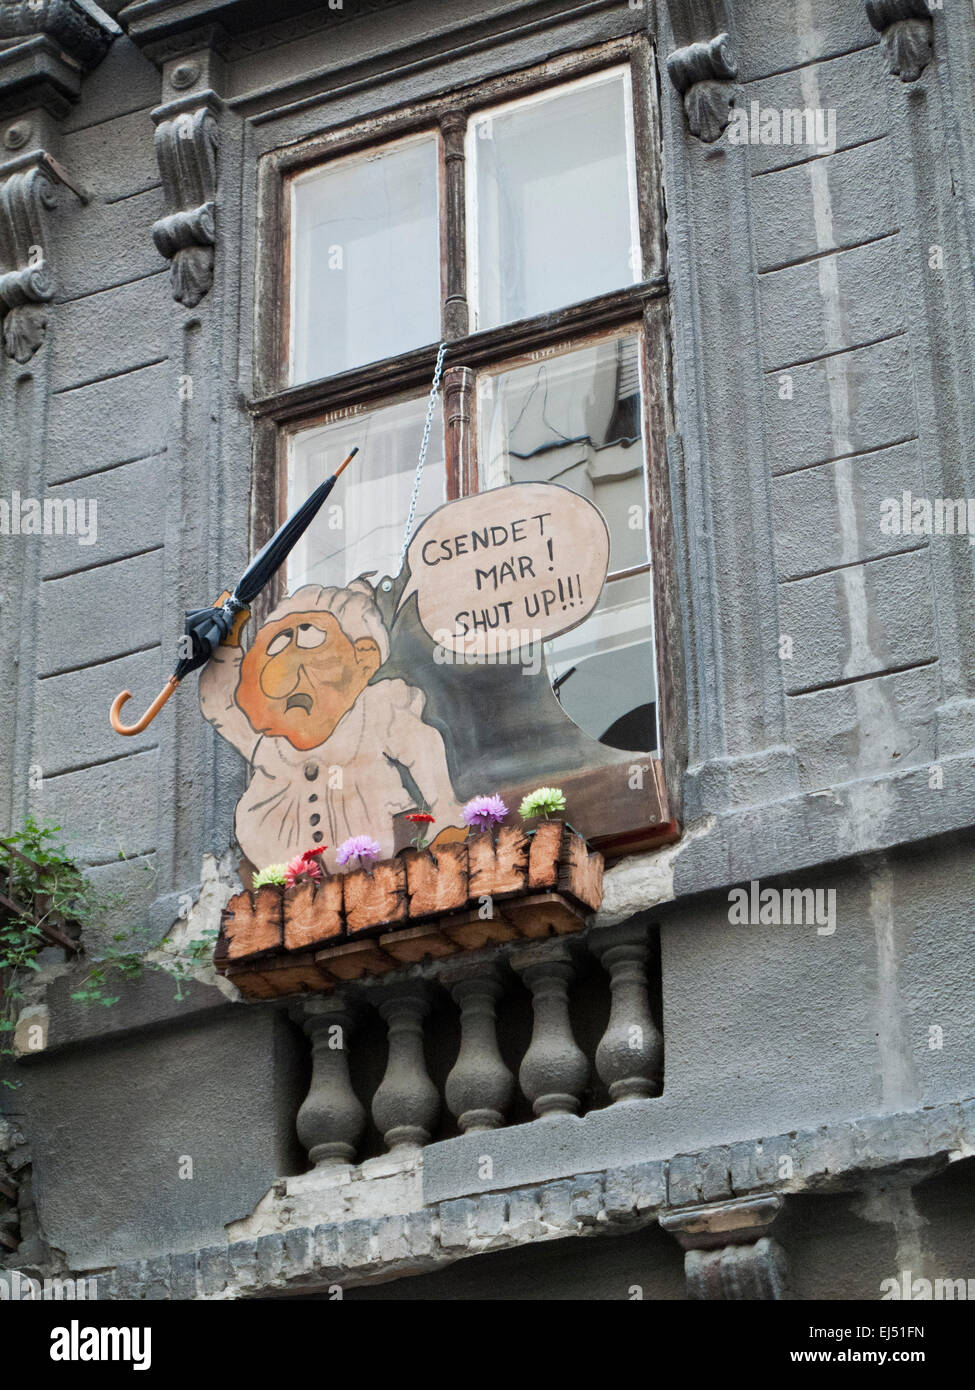 A sign in a window in Budapest, Hungary, telling people in the street to 'shut up' - Stock Image